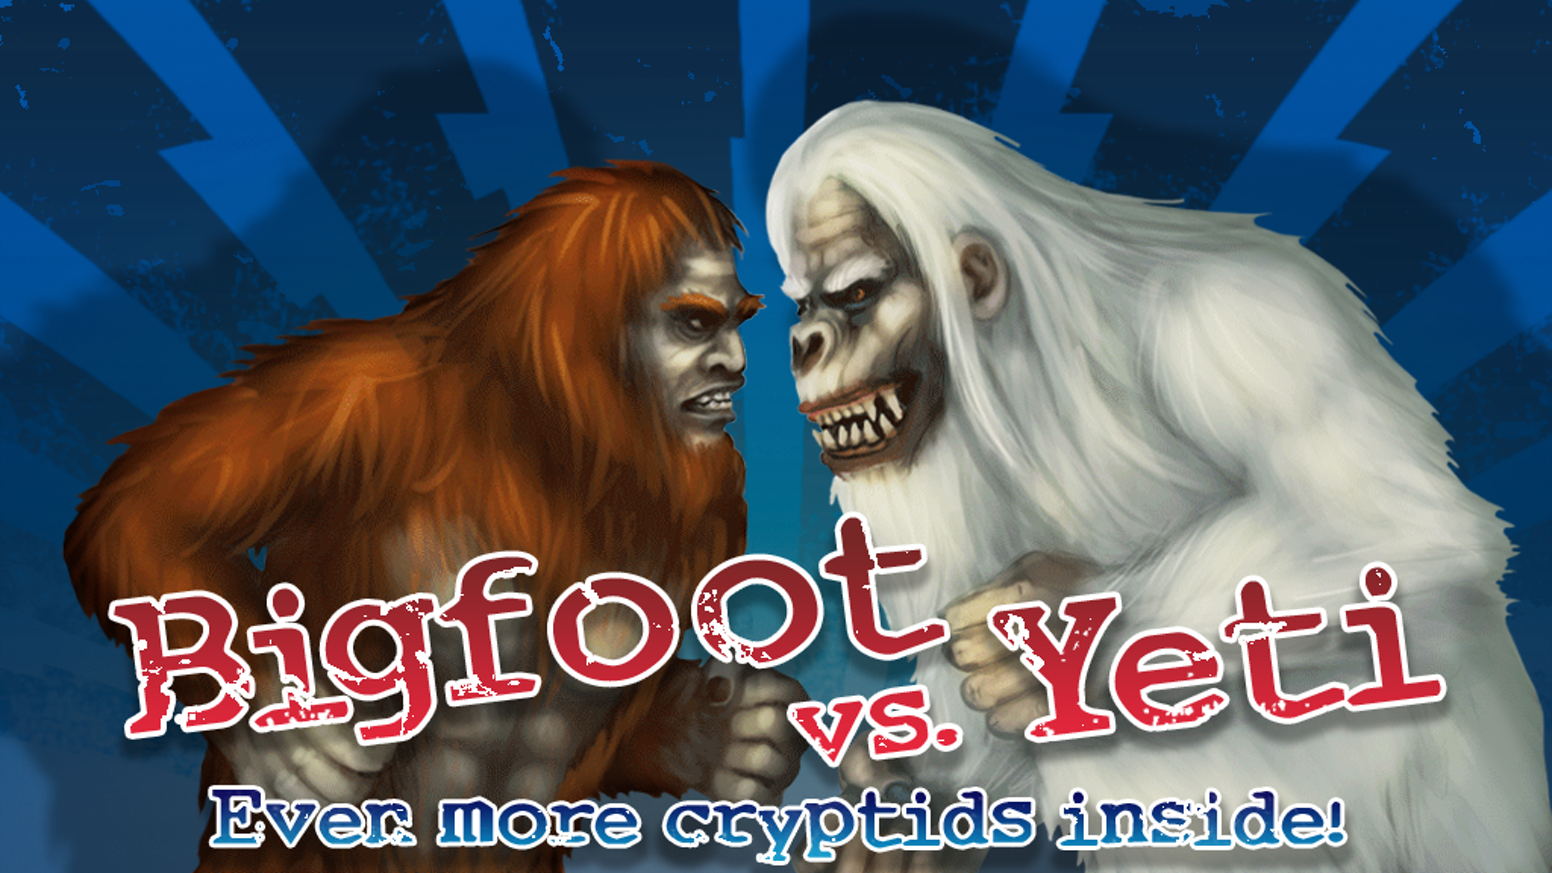 A battle is brewing between Bigfoot the king of cryptids and his abominable cousin the Yeti, who is sick of being left out in the cold.